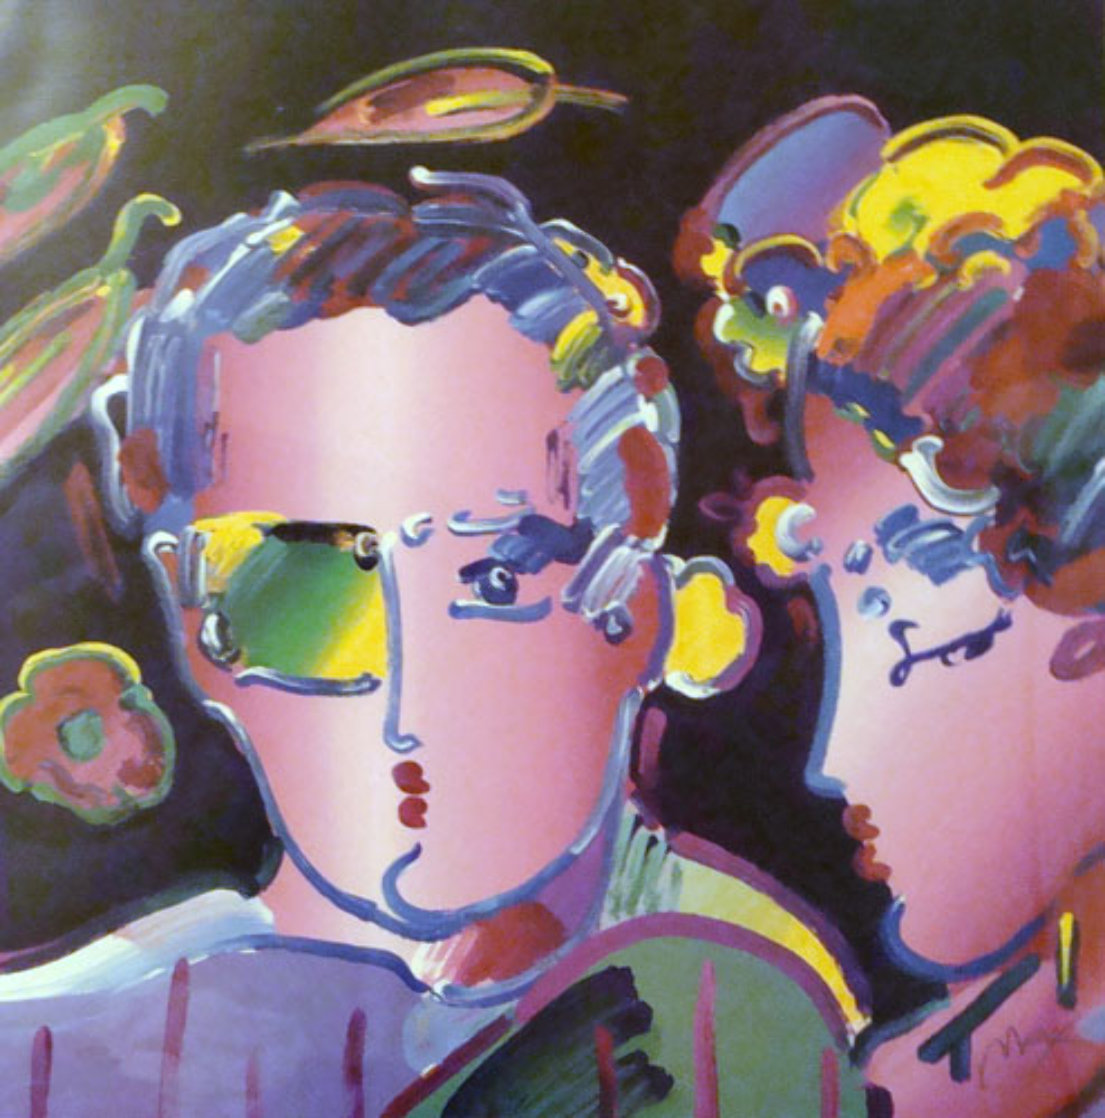 Zero in Love II 2007 Limited Edition Print by Peter Max